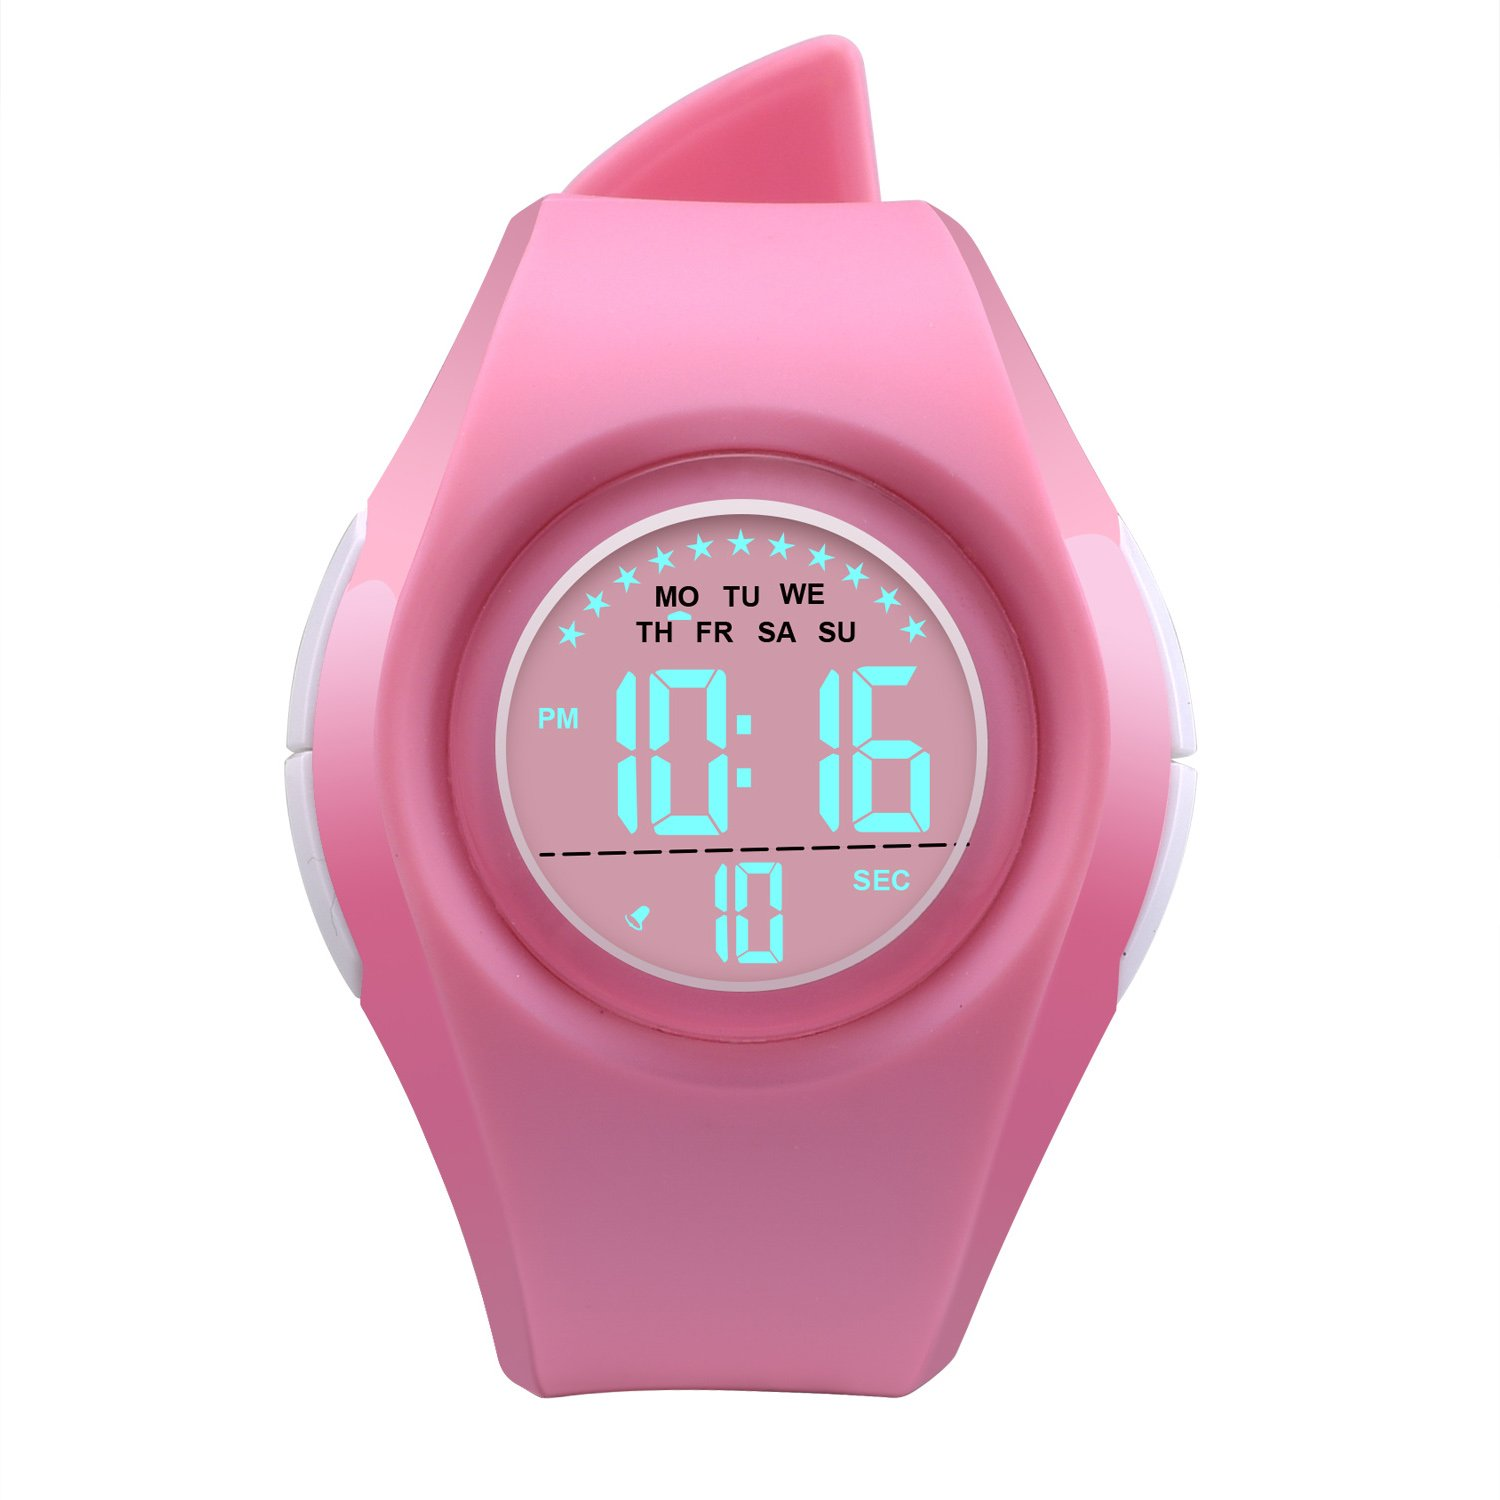 Kids Watch Waterproof Children Electronic Watch - Lighting Watch 50M Waterproof for Outdoor Sports,LED Digital Stopwatch with Chronograph, Alarm,Time Window Child Wrist Watch for Boys, Girls (Pink) by PERSUPER